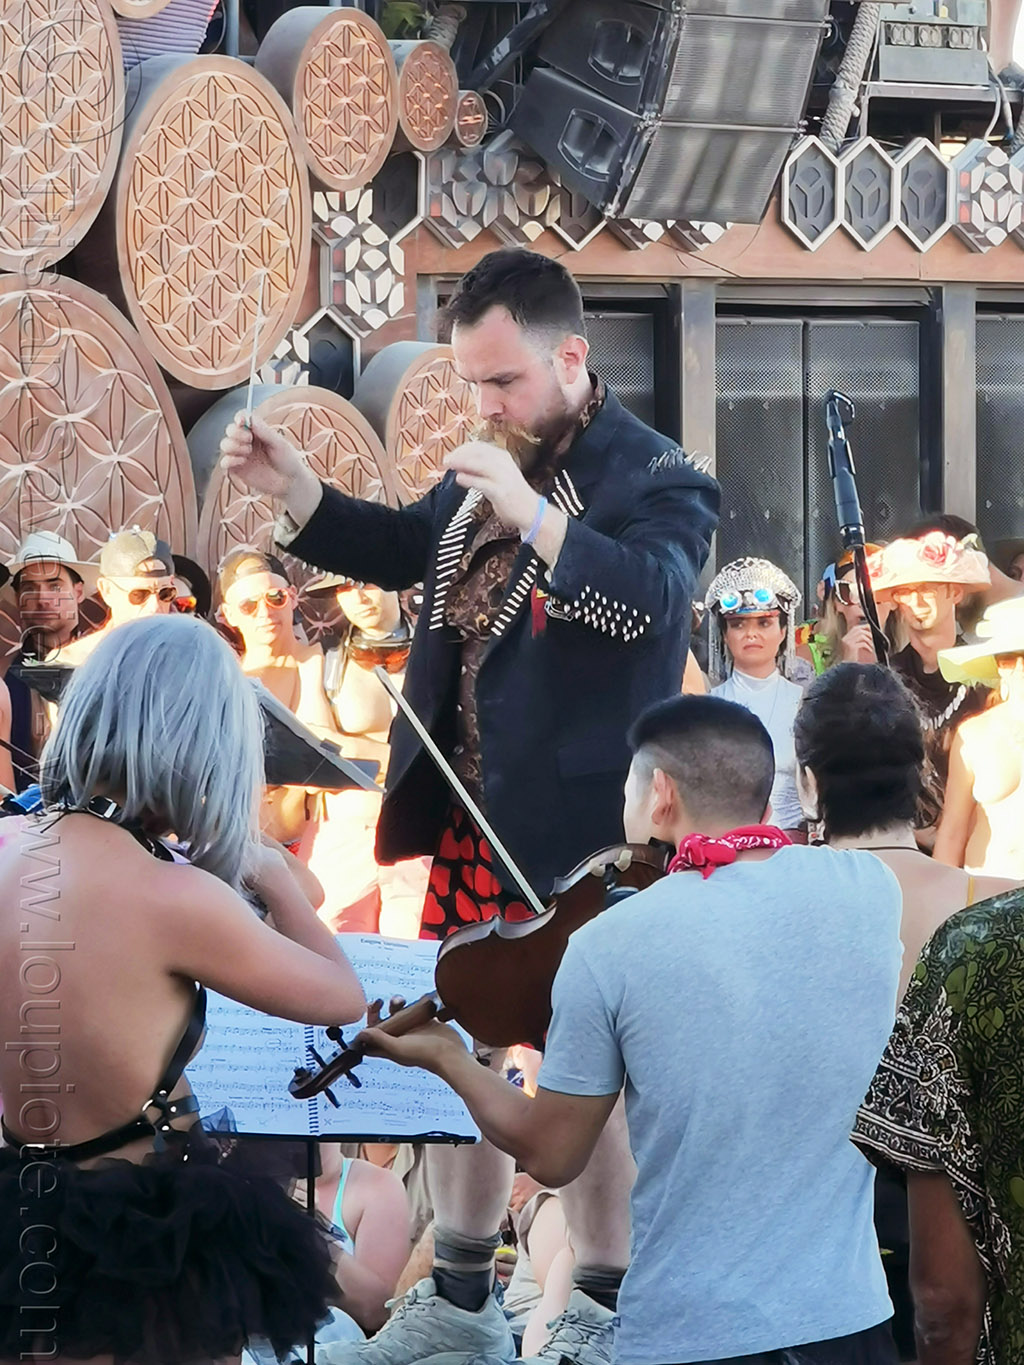 black rock philharmonic - burning man 2019, black rock philharmonic, burning man, classical music, music director, musicians, orchestra director, philharmonic orchestra, violin, violinist